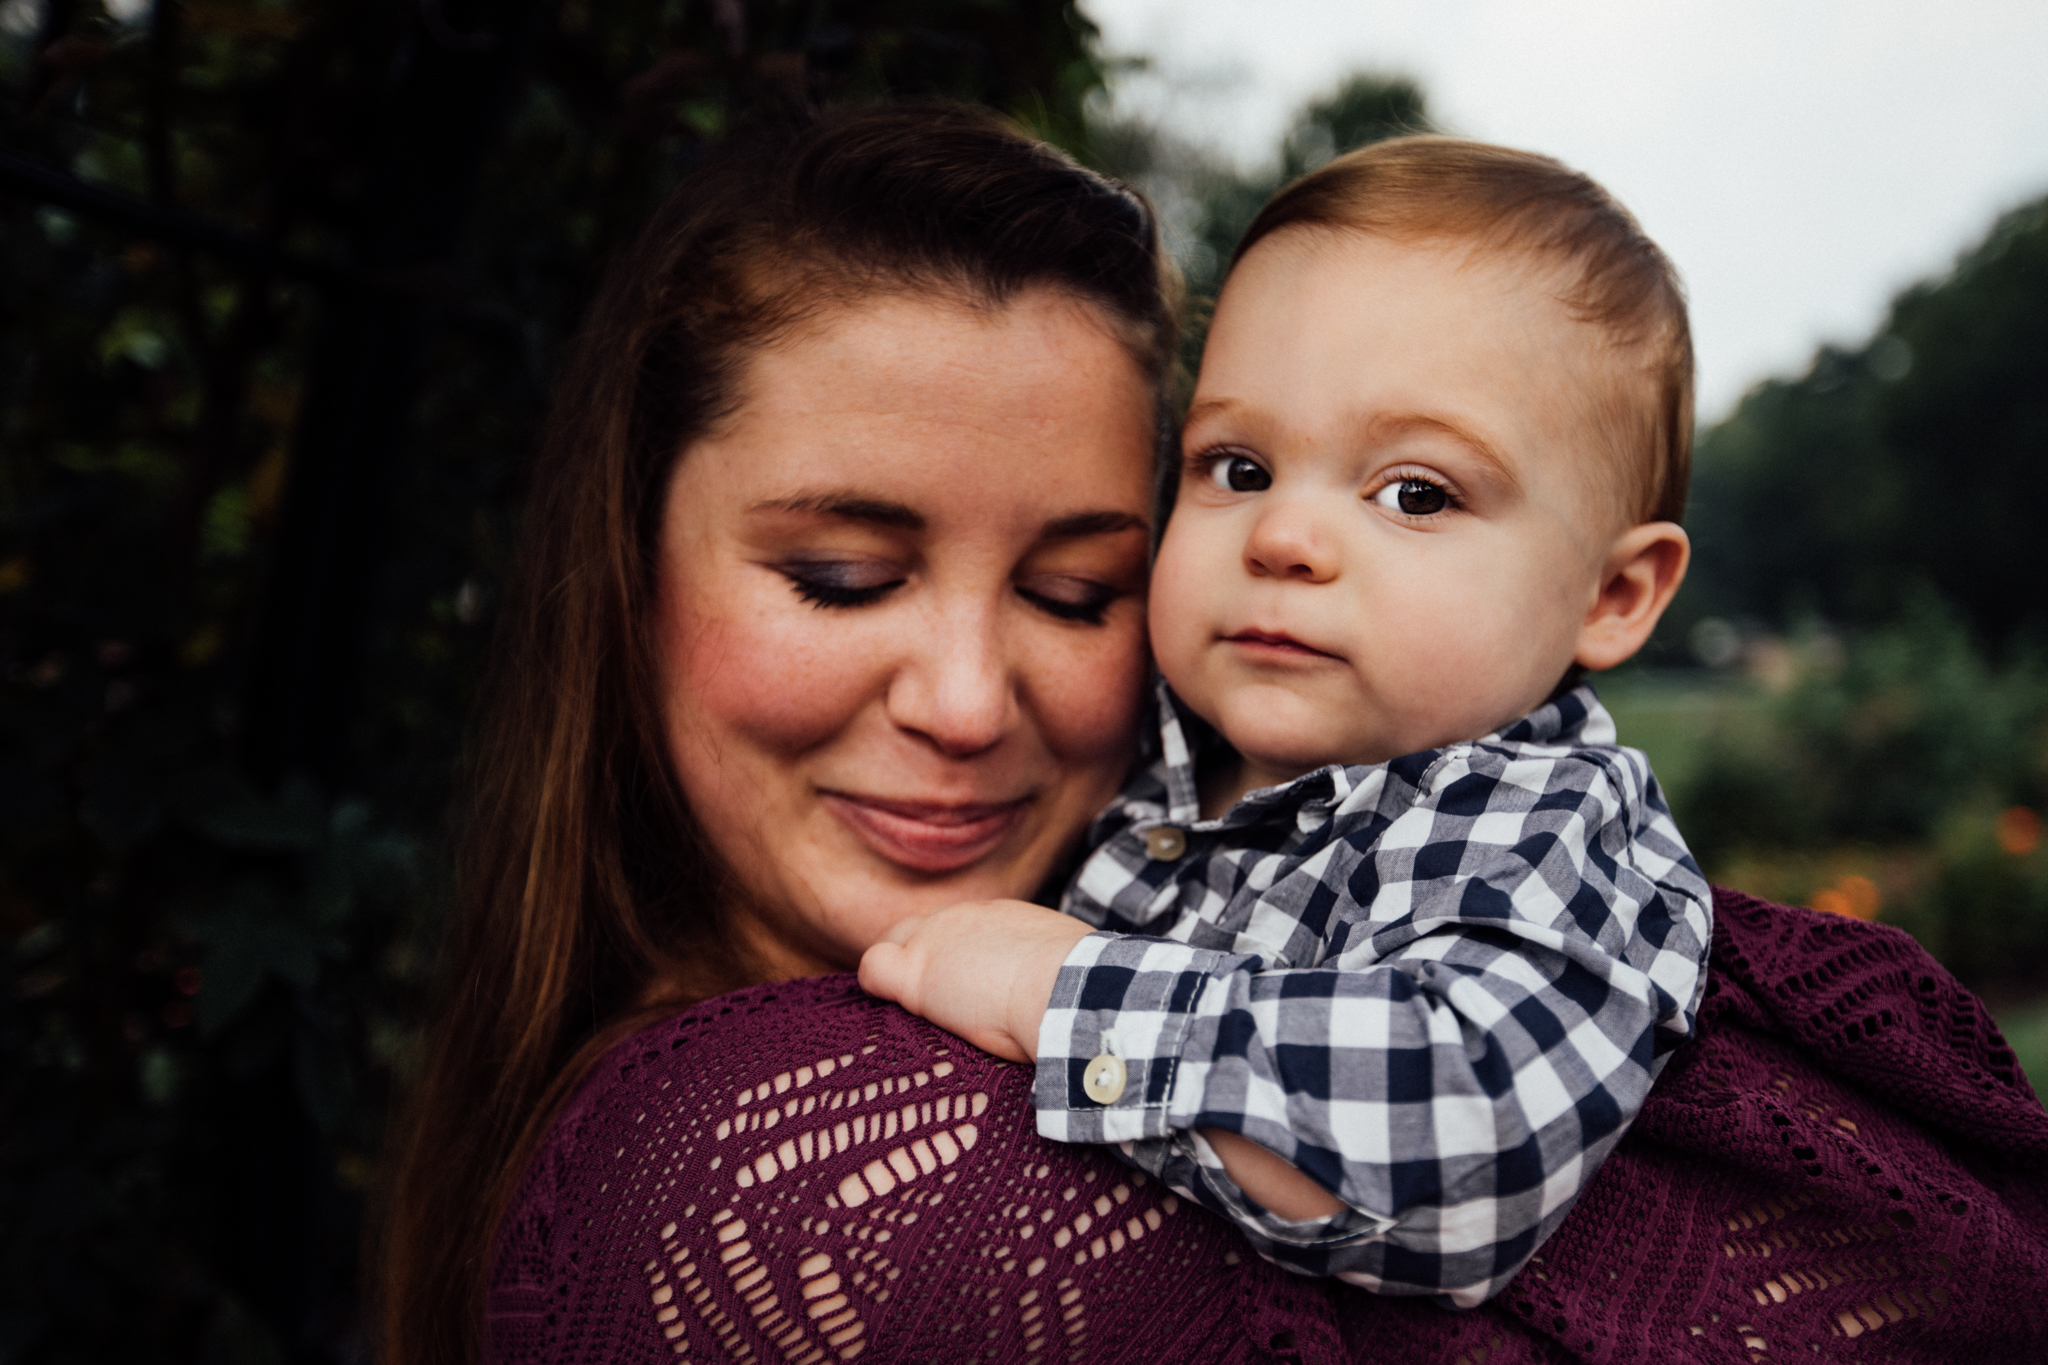 Mom snuggles toddler son by Madison and Huntsville Alabama family photographer Rachel K Photo